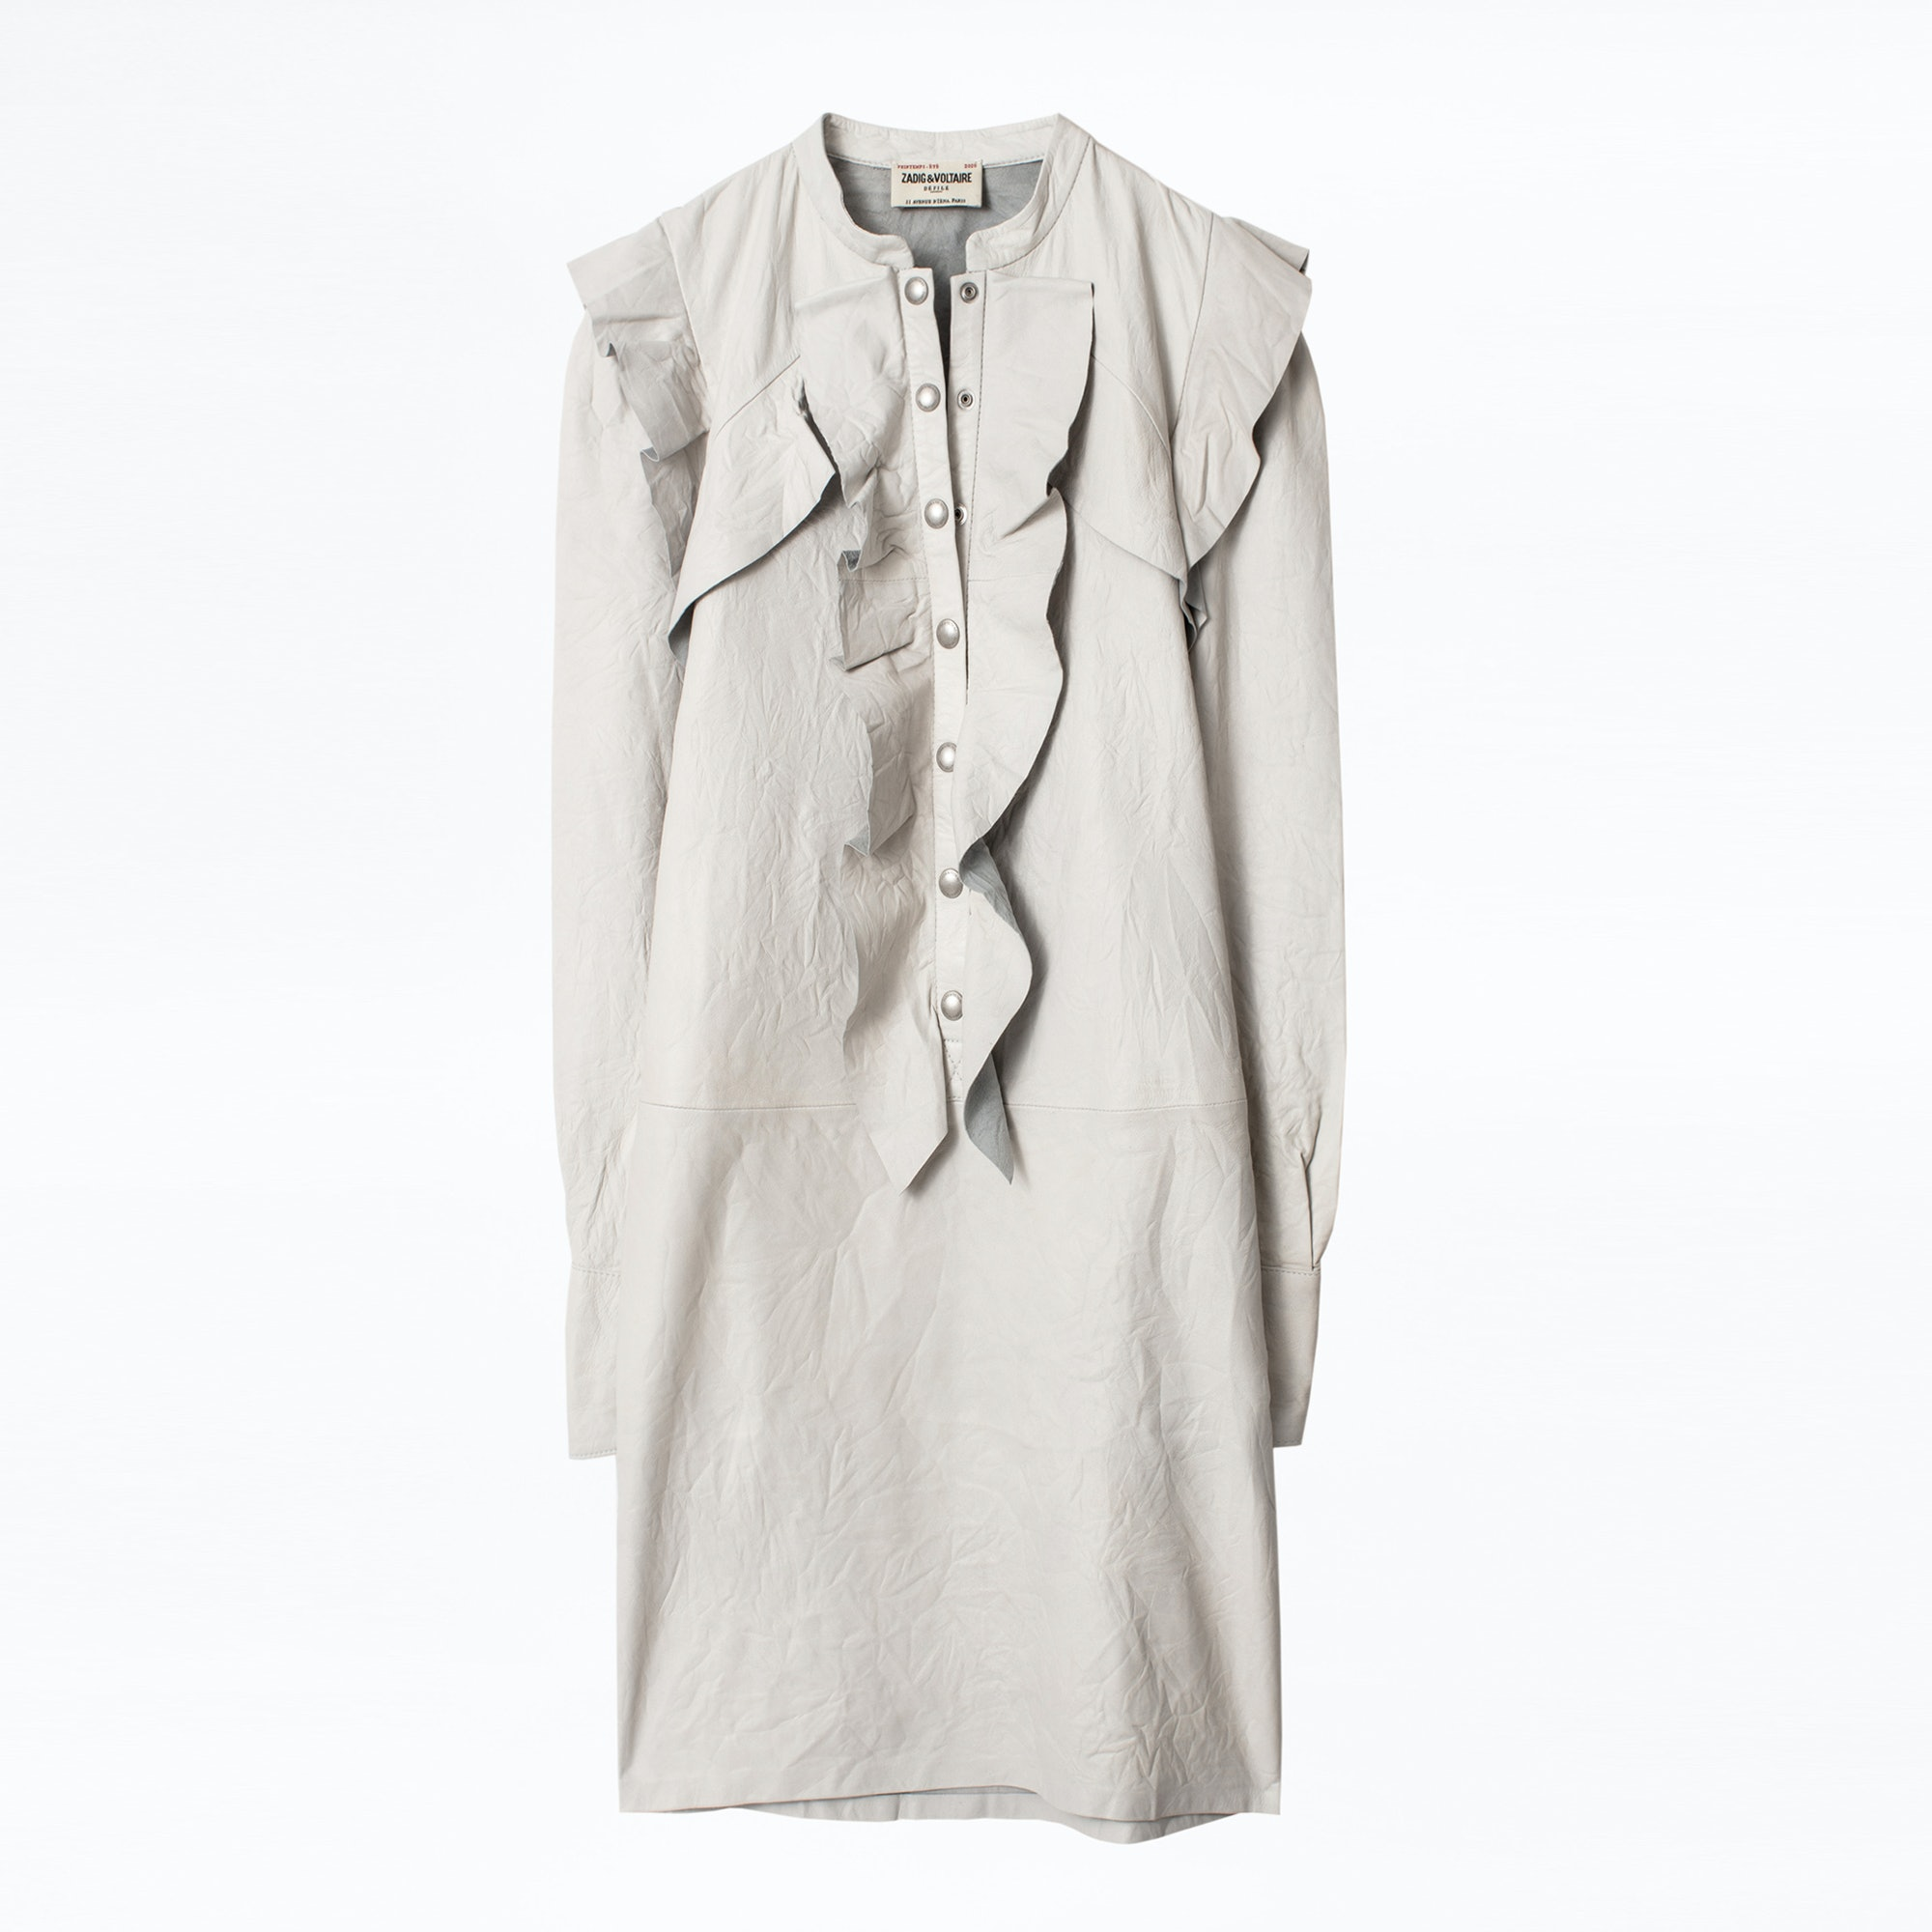 Robe Ruskies Cuir Froisse - Taille 34  - Zadig & Voltaire - Modalova